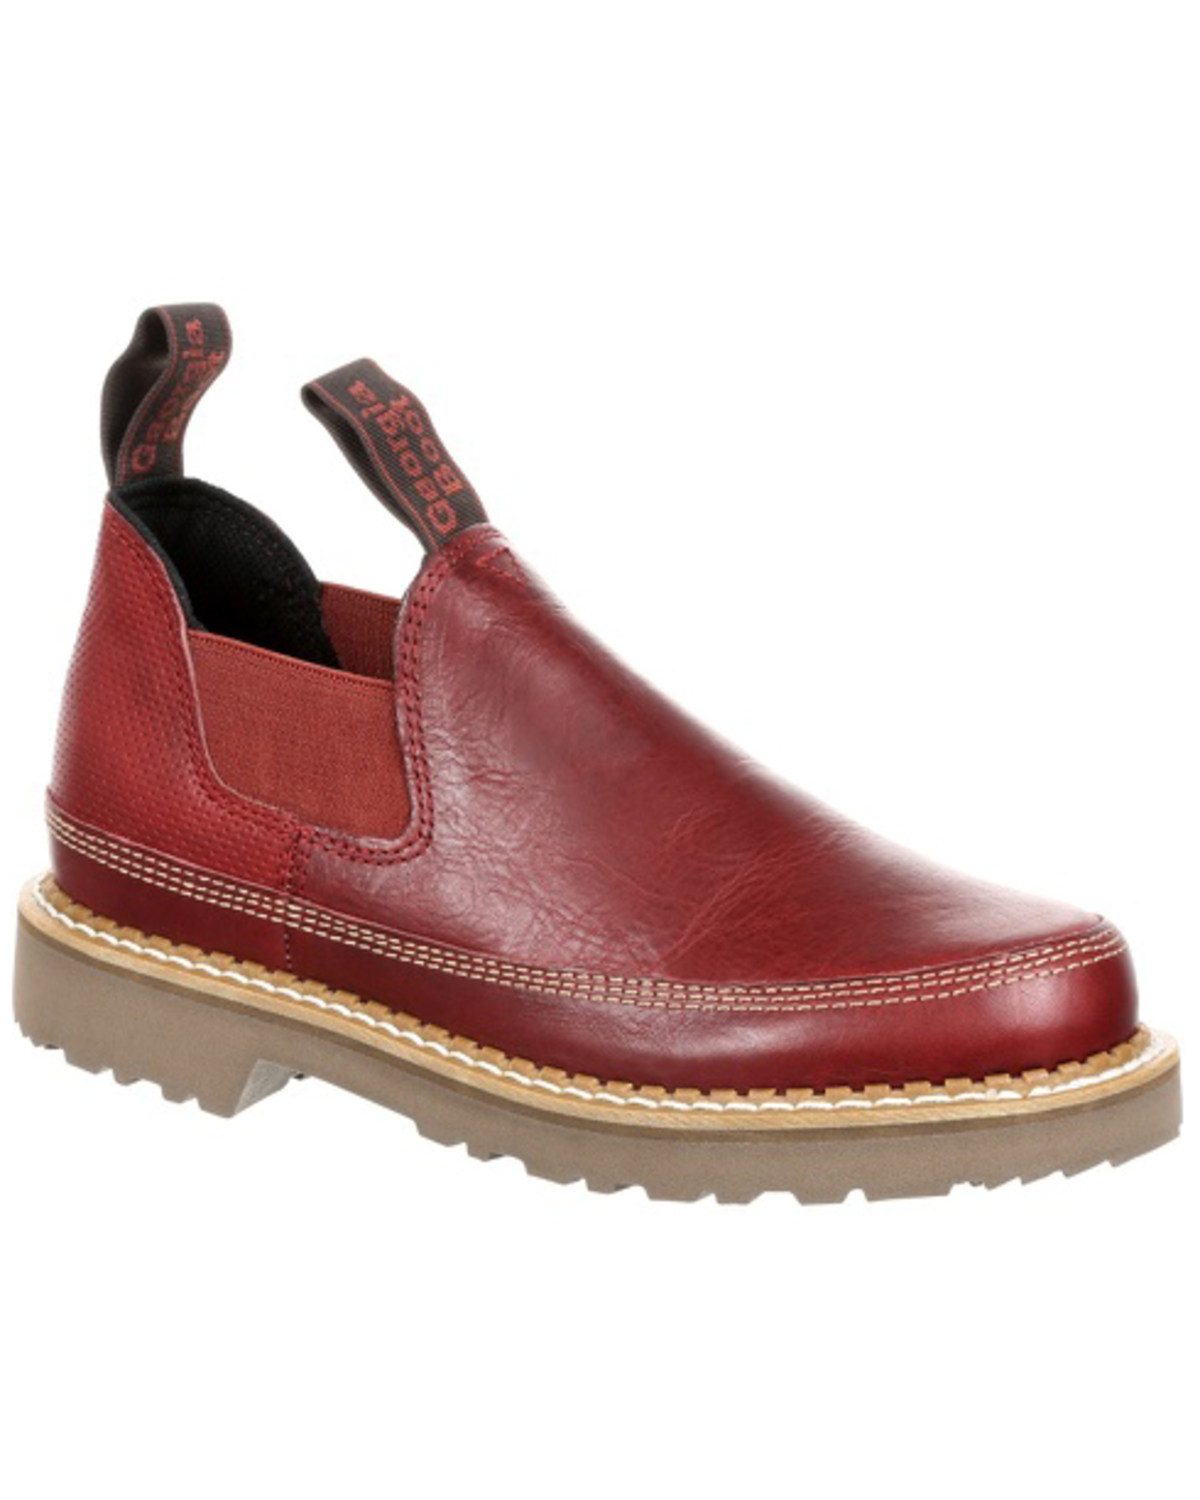 Georgia Boot Women's Giant Red Leather